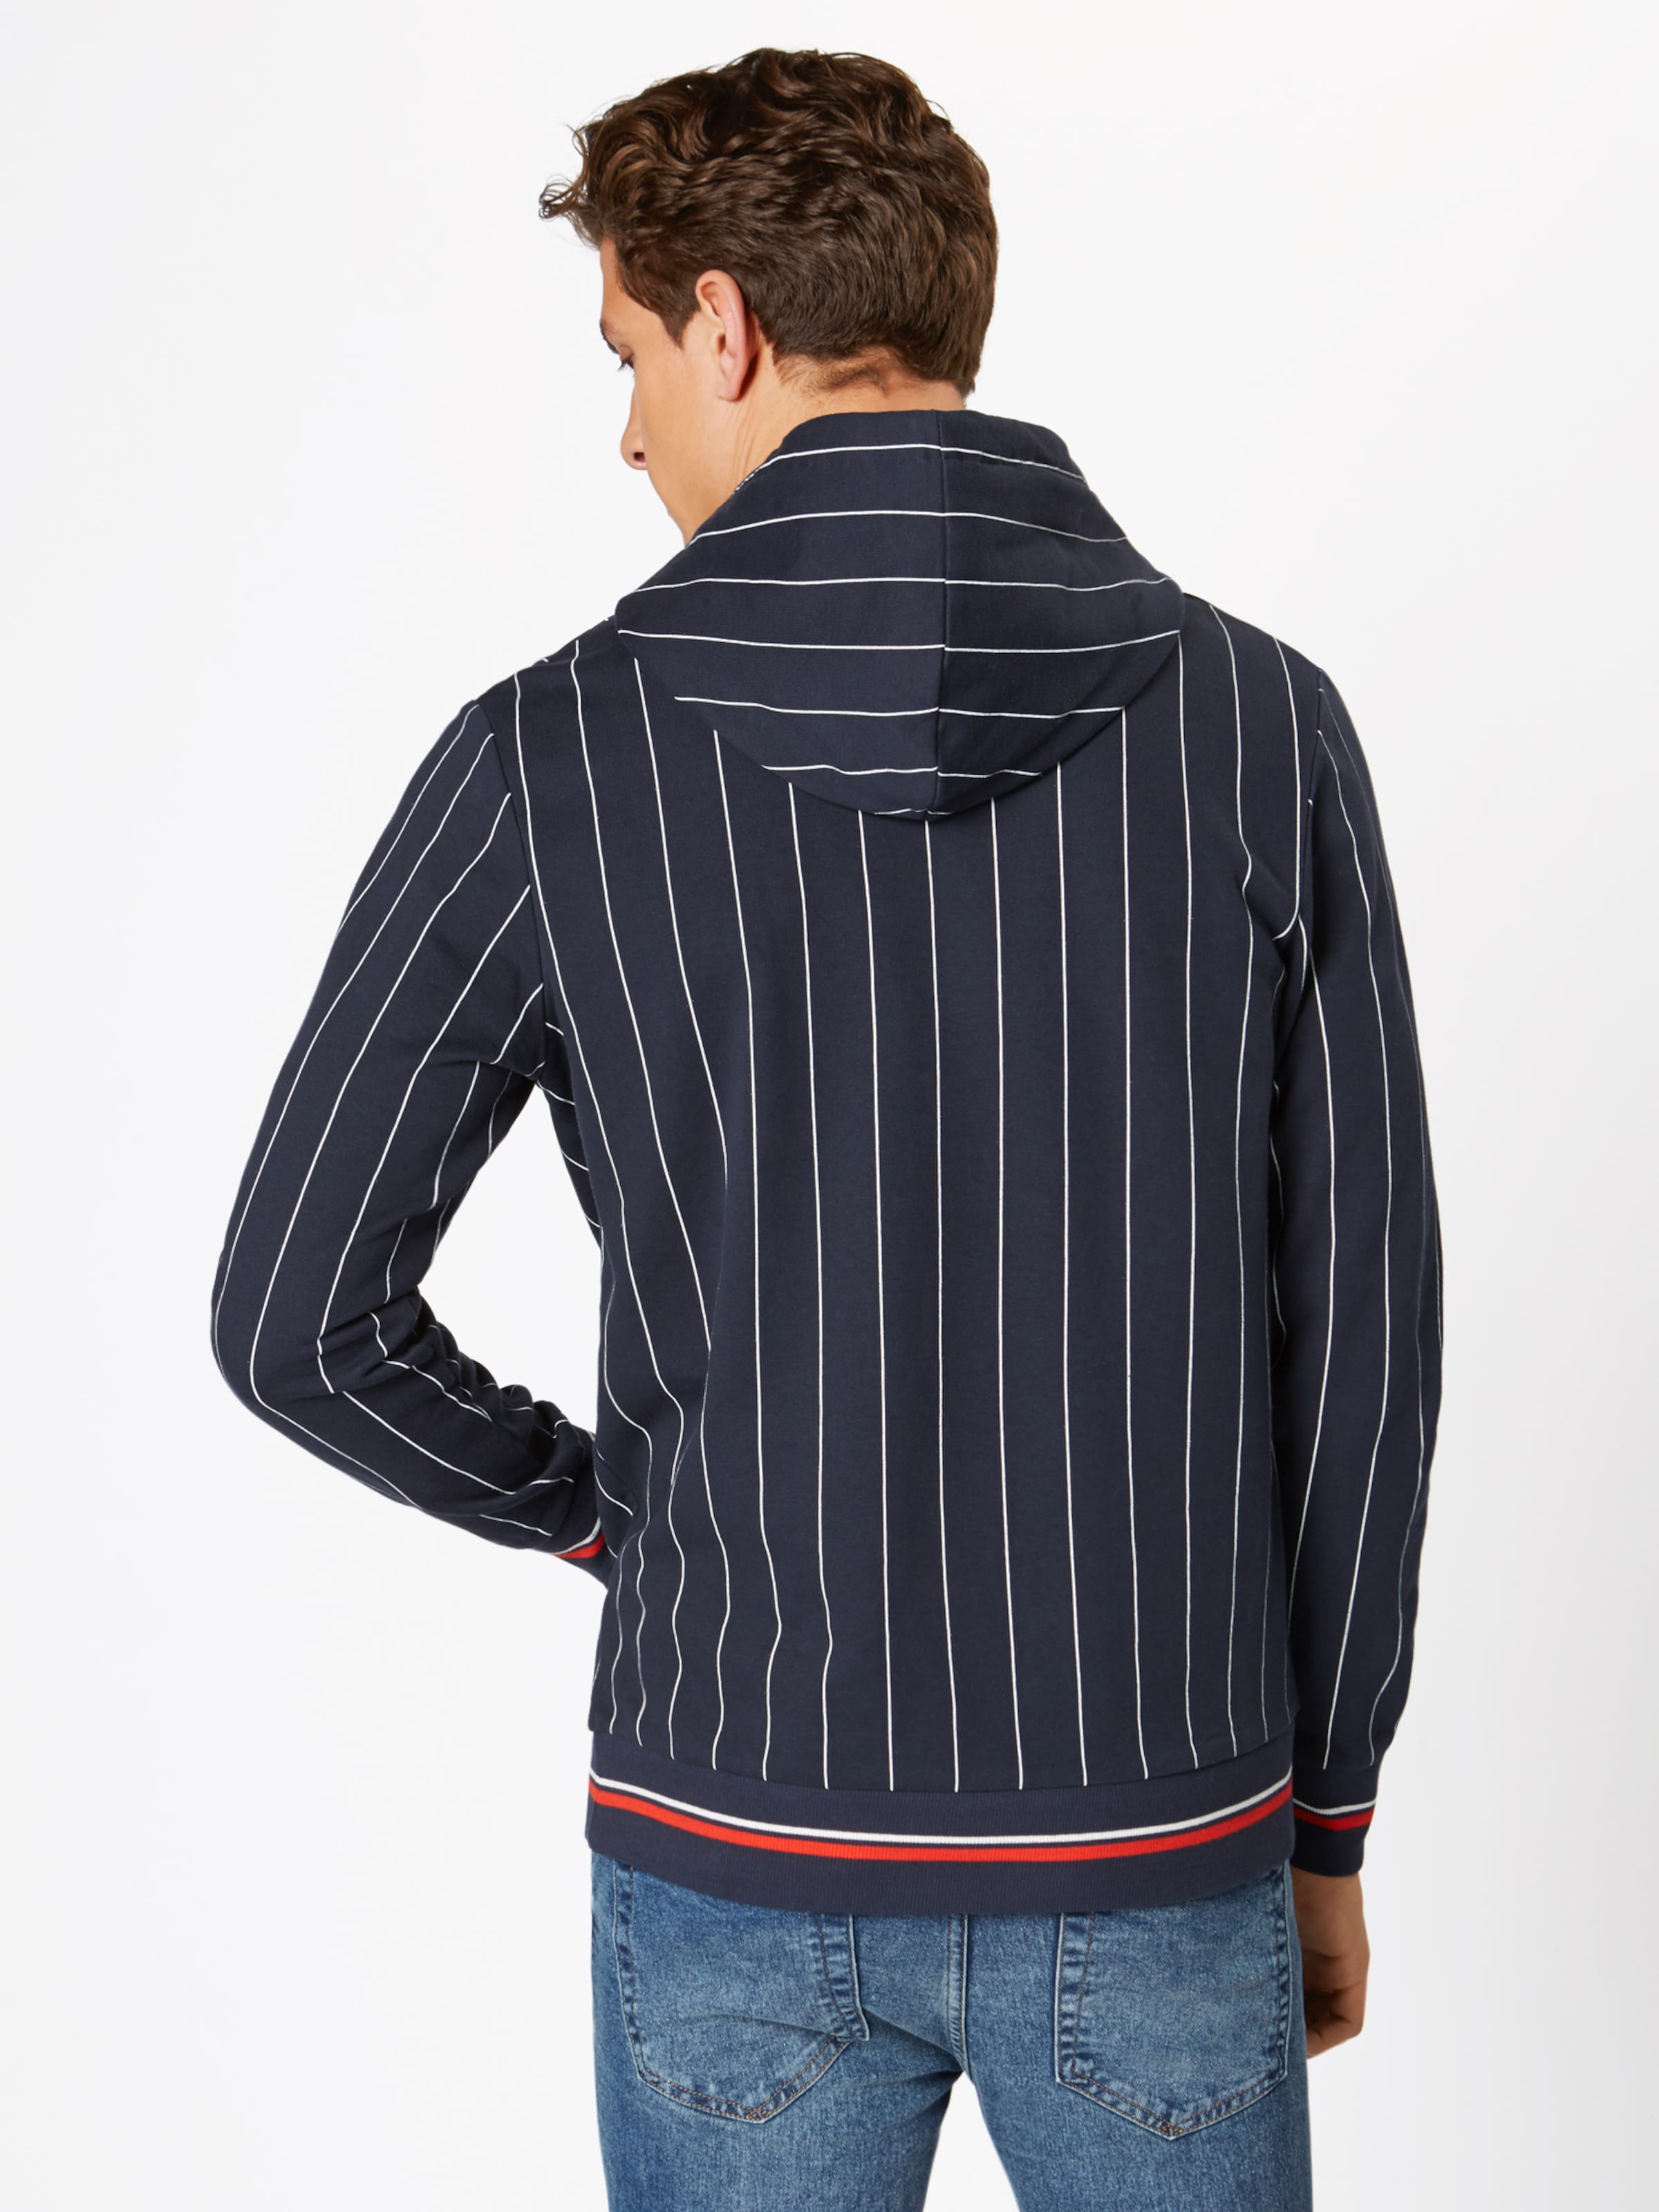 shirt Jones En Sweat Bleu Jackamp; FoncéBlanc 'pinstripe' J31FcTlK